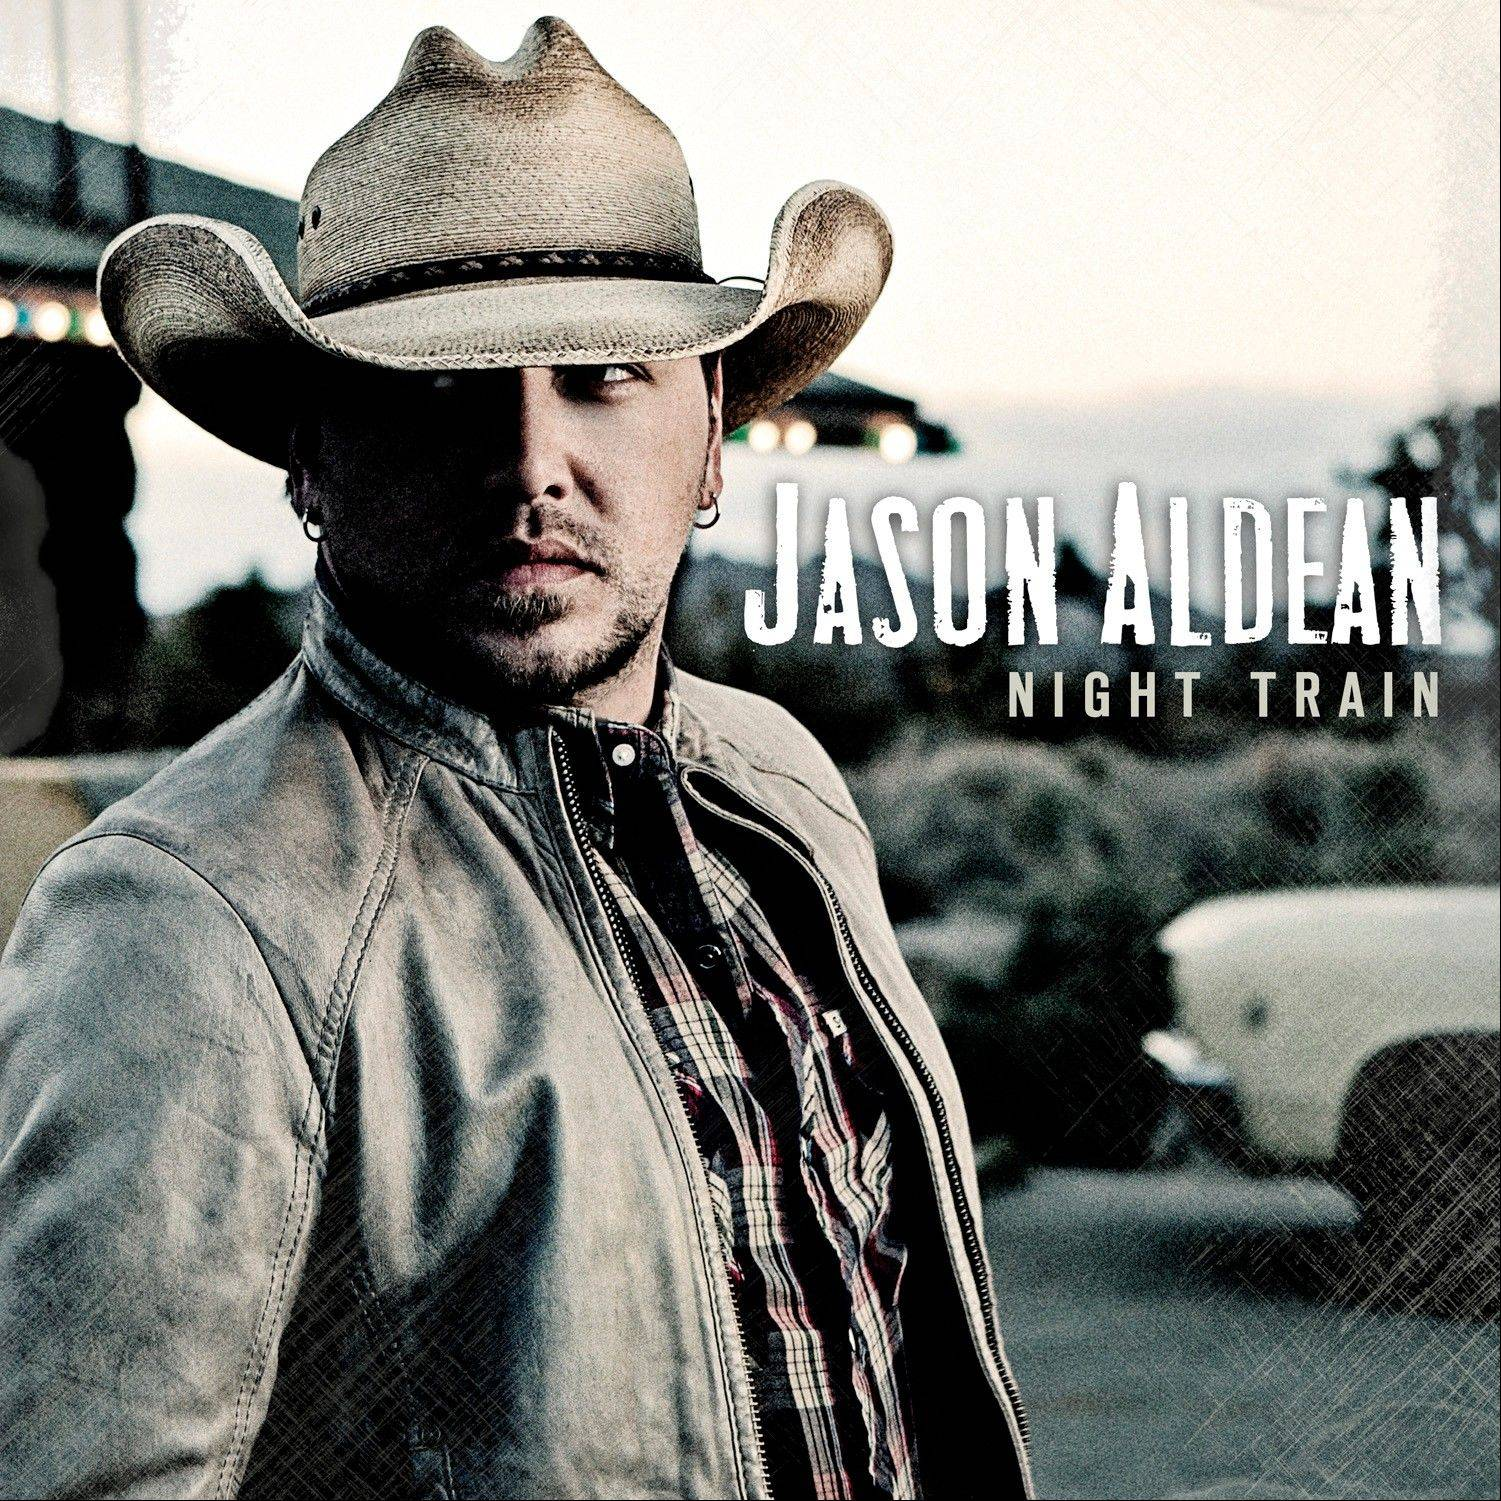 All aboard Jason Aldean's 'Night Train'